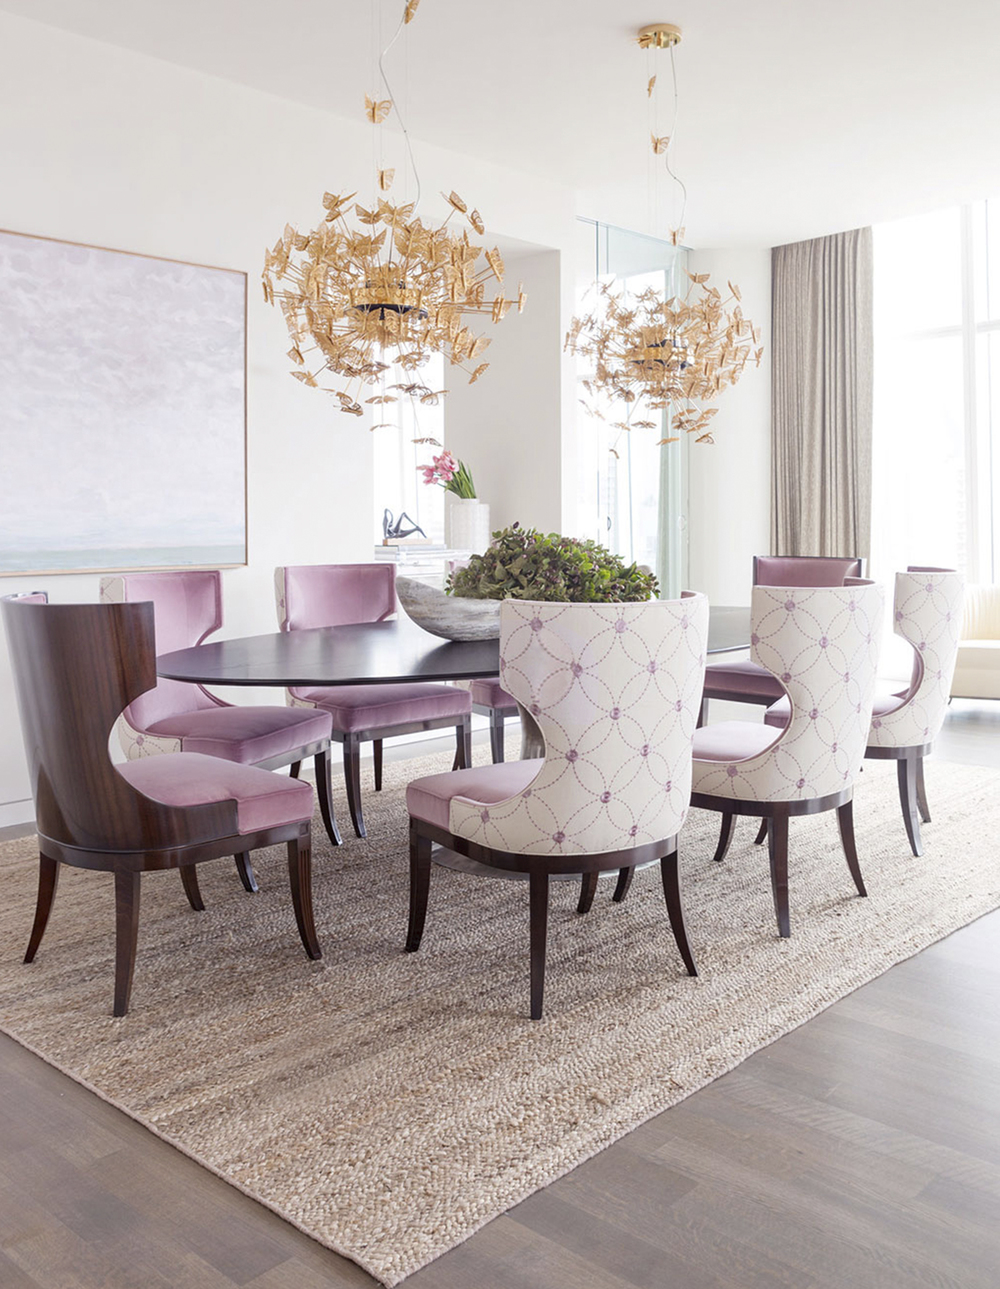 10 Amazing Dining Room Decoration Ideas That Will Delight You2 dining room decoration ideas 10 Amazing Dining Room Decoration Ideas That Will Delight You 10 Amazing Dining Room Decoration Ideas That Will Delight You2